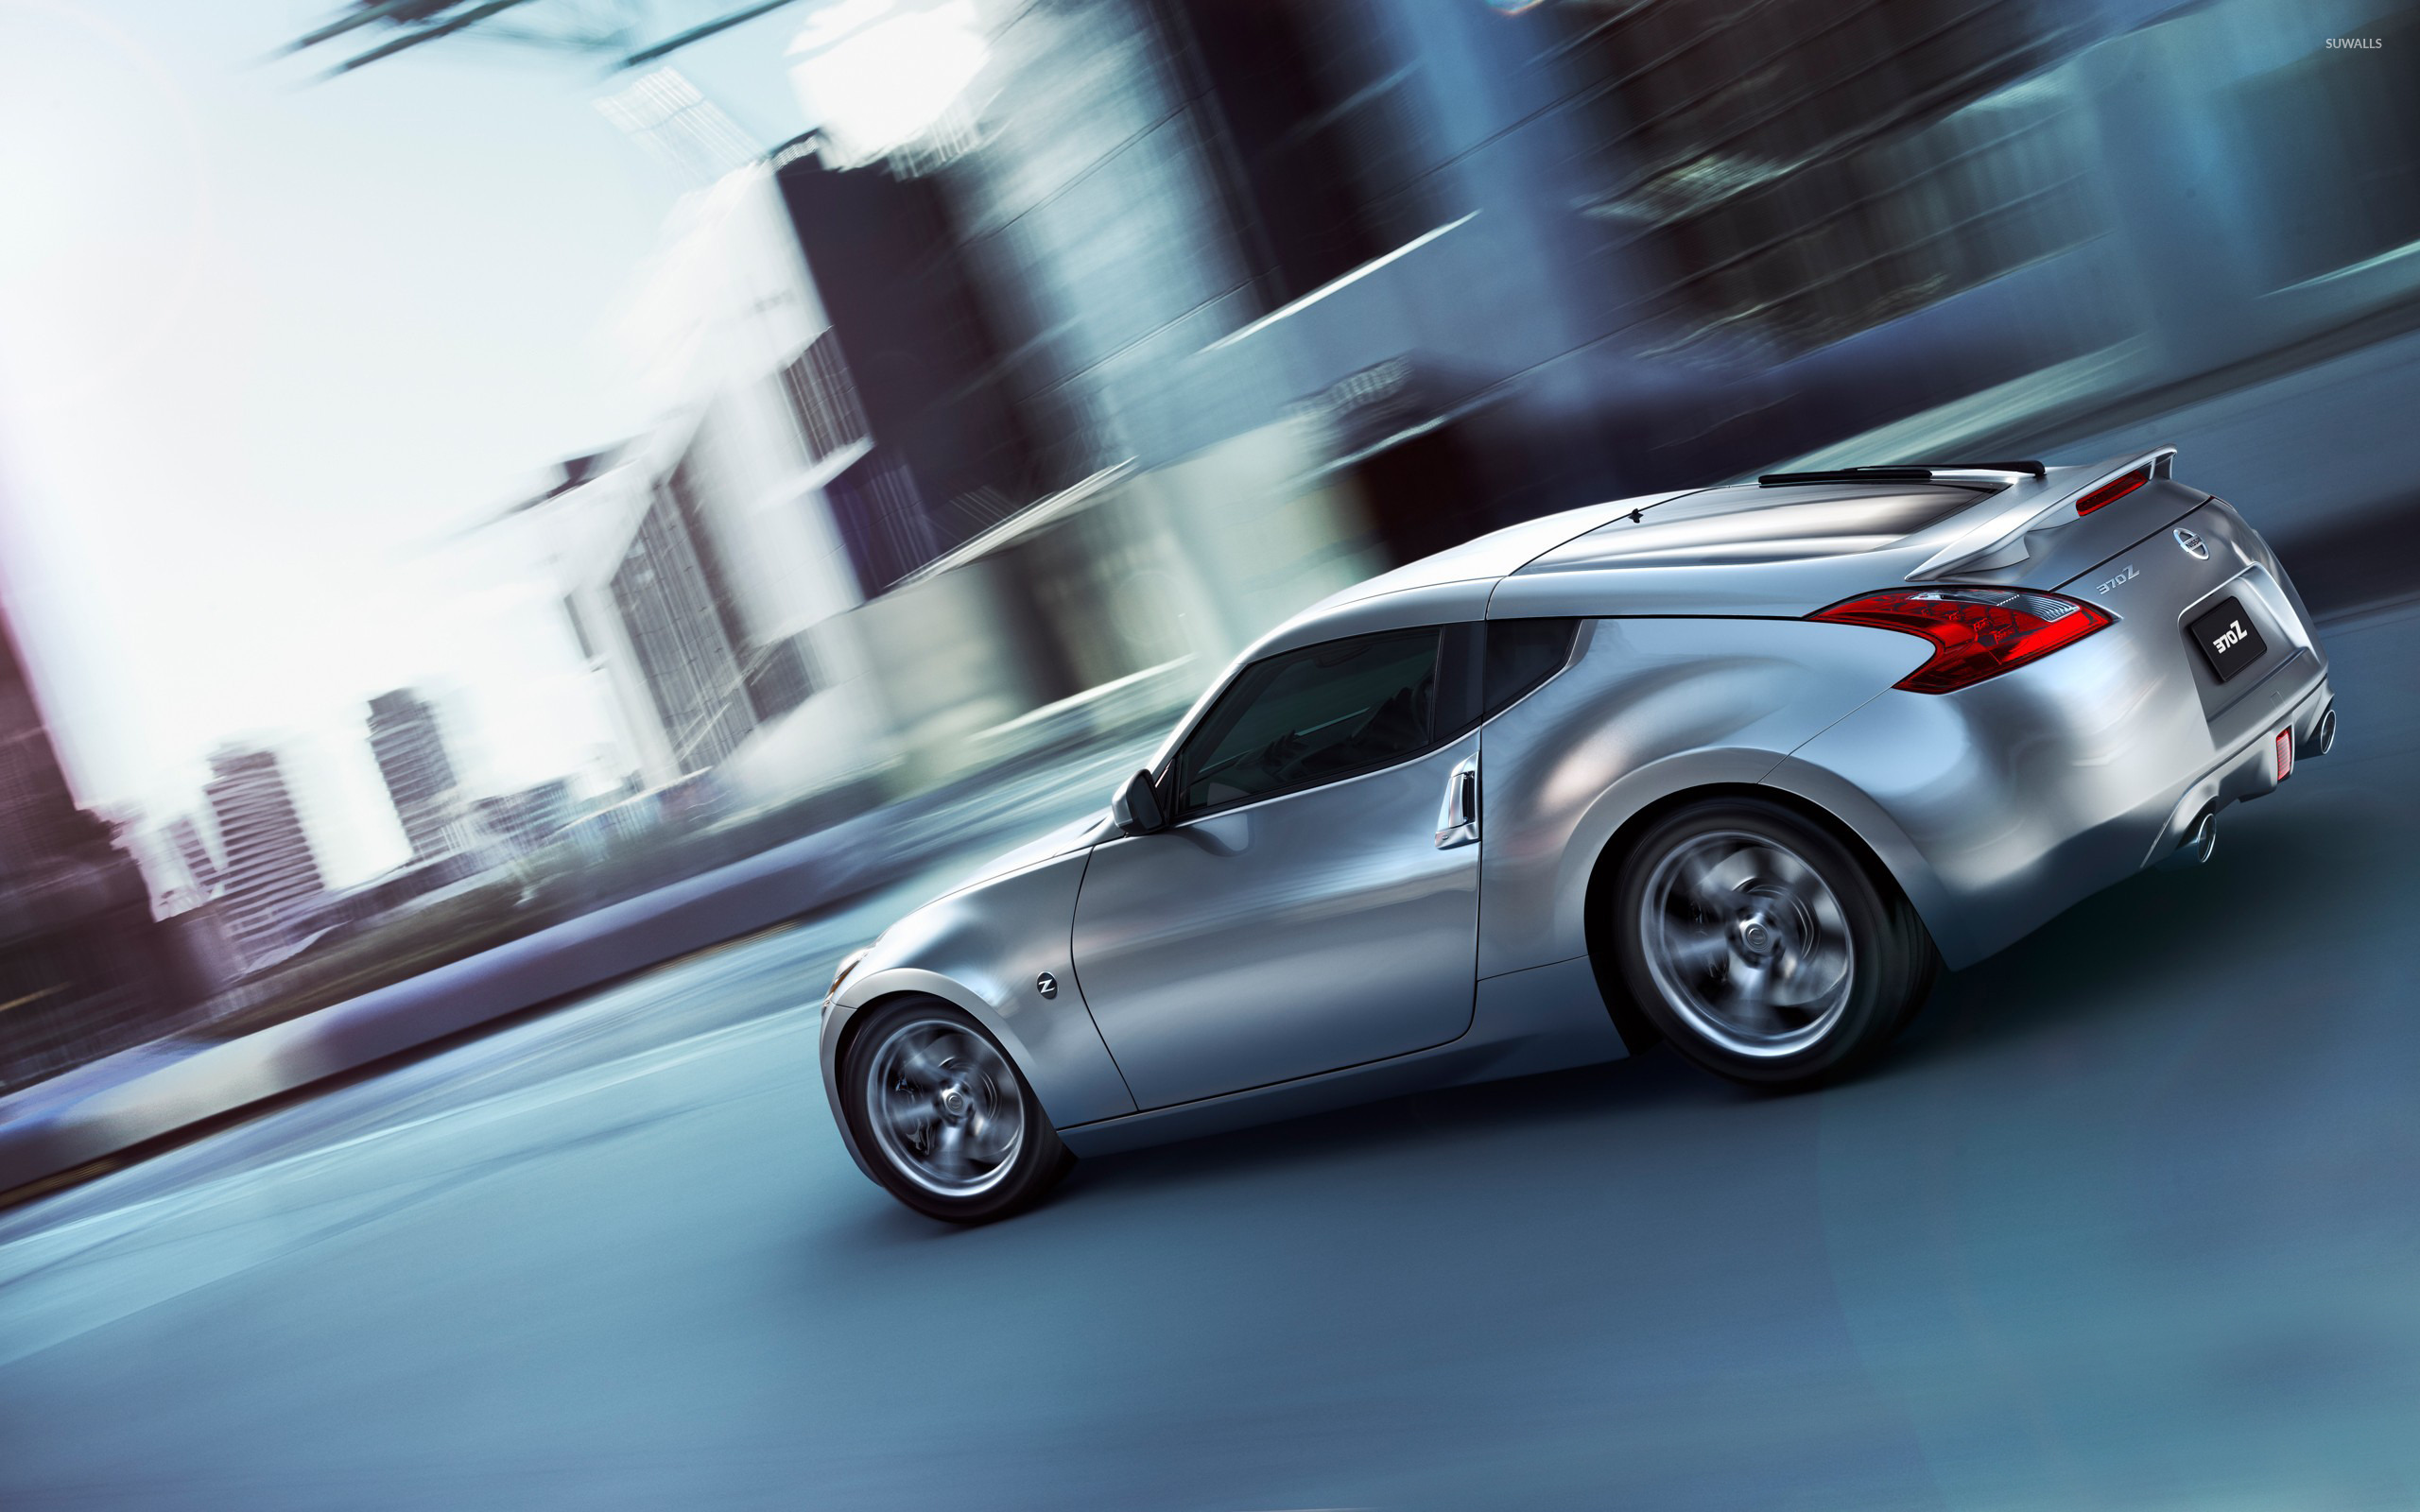 Nissan 370Z Pictures | Download Nissan 370Z wallpaper | 370 Z ...